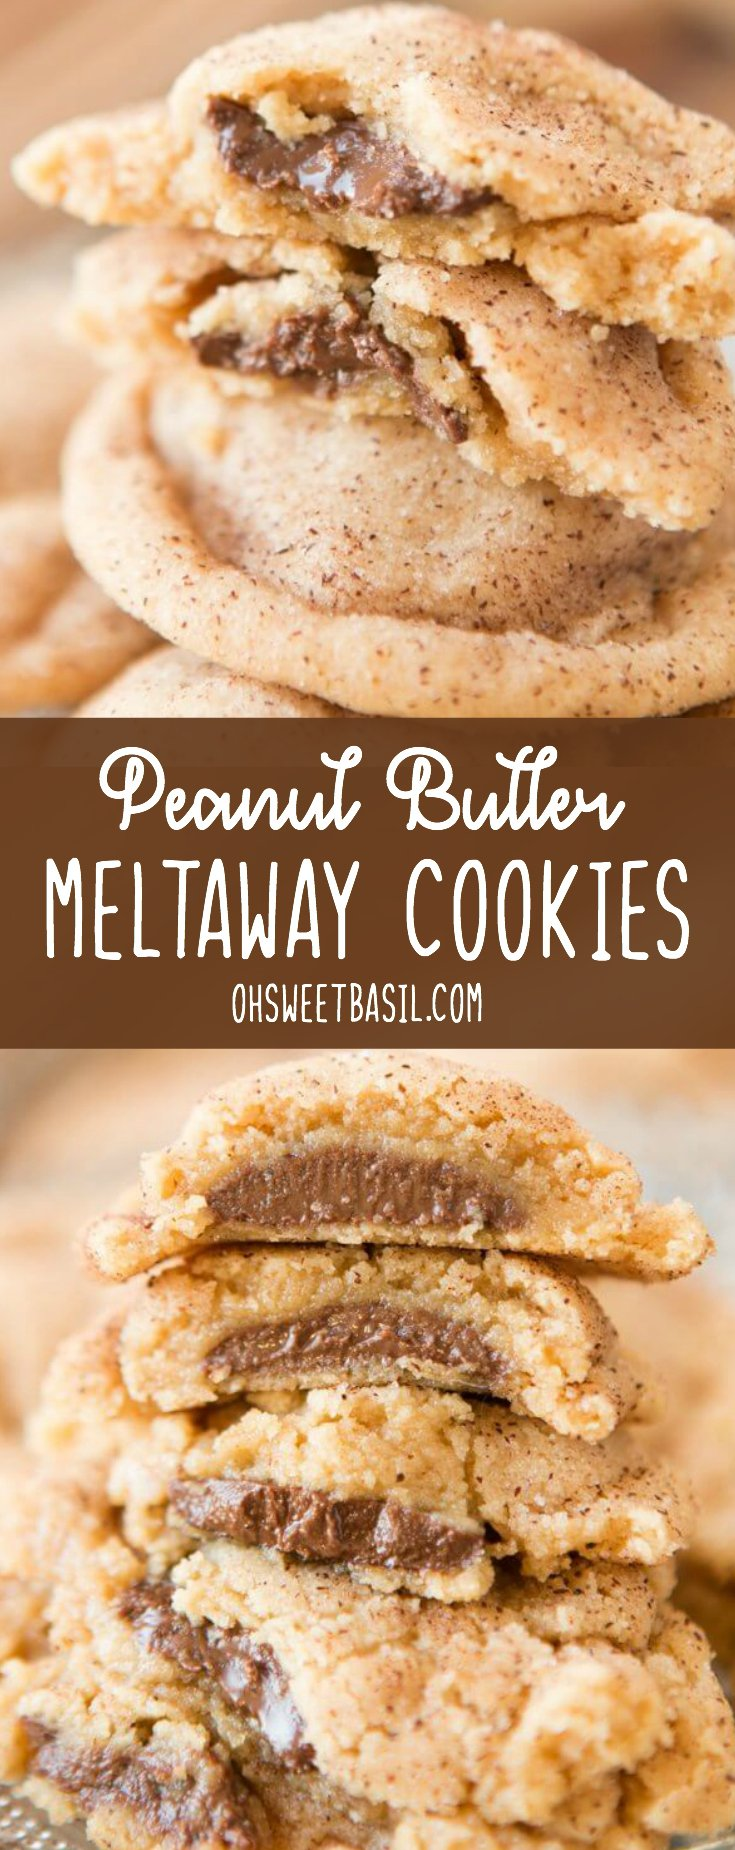 These are the best peanut butter cookies I've ever had. Peanut Butter Meltaway Cookies are peanut butter cookies, stuffed with chocolate!